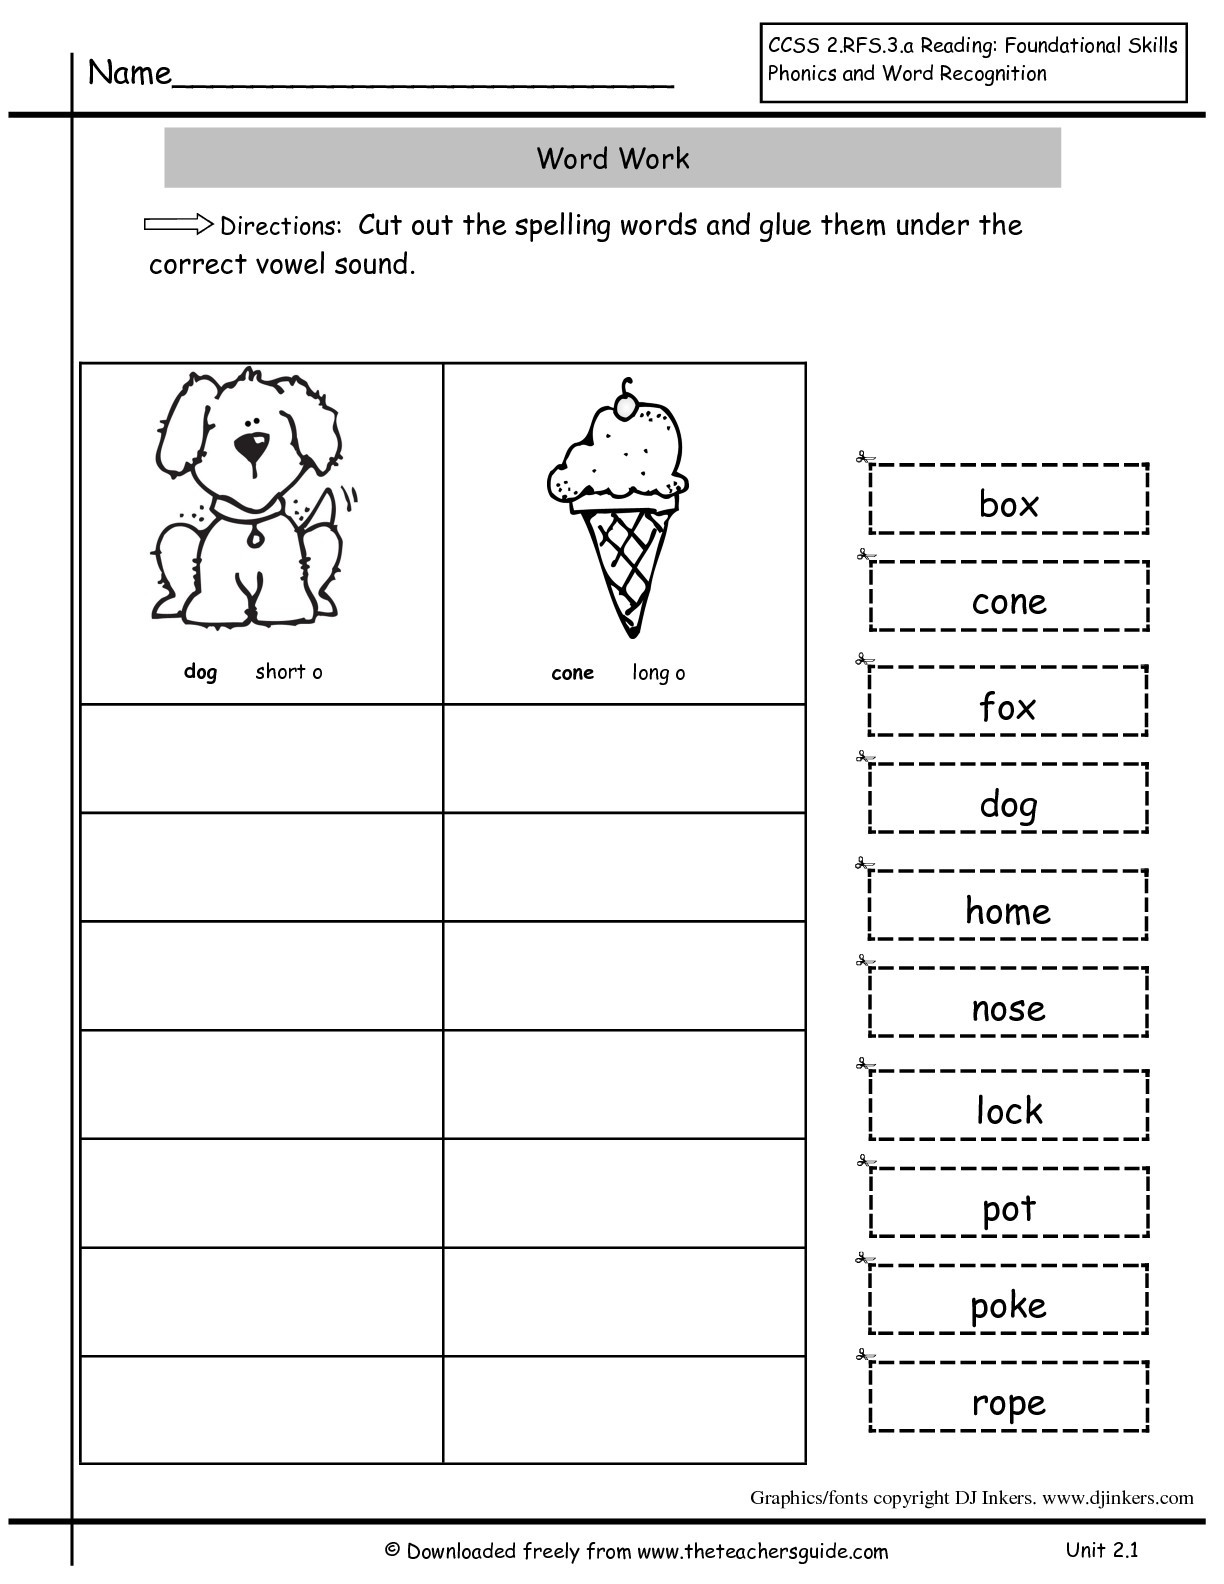 Inflected Endings Worksheets 2nd Grade Wonders Second Grade Unit Two Week E Printouts